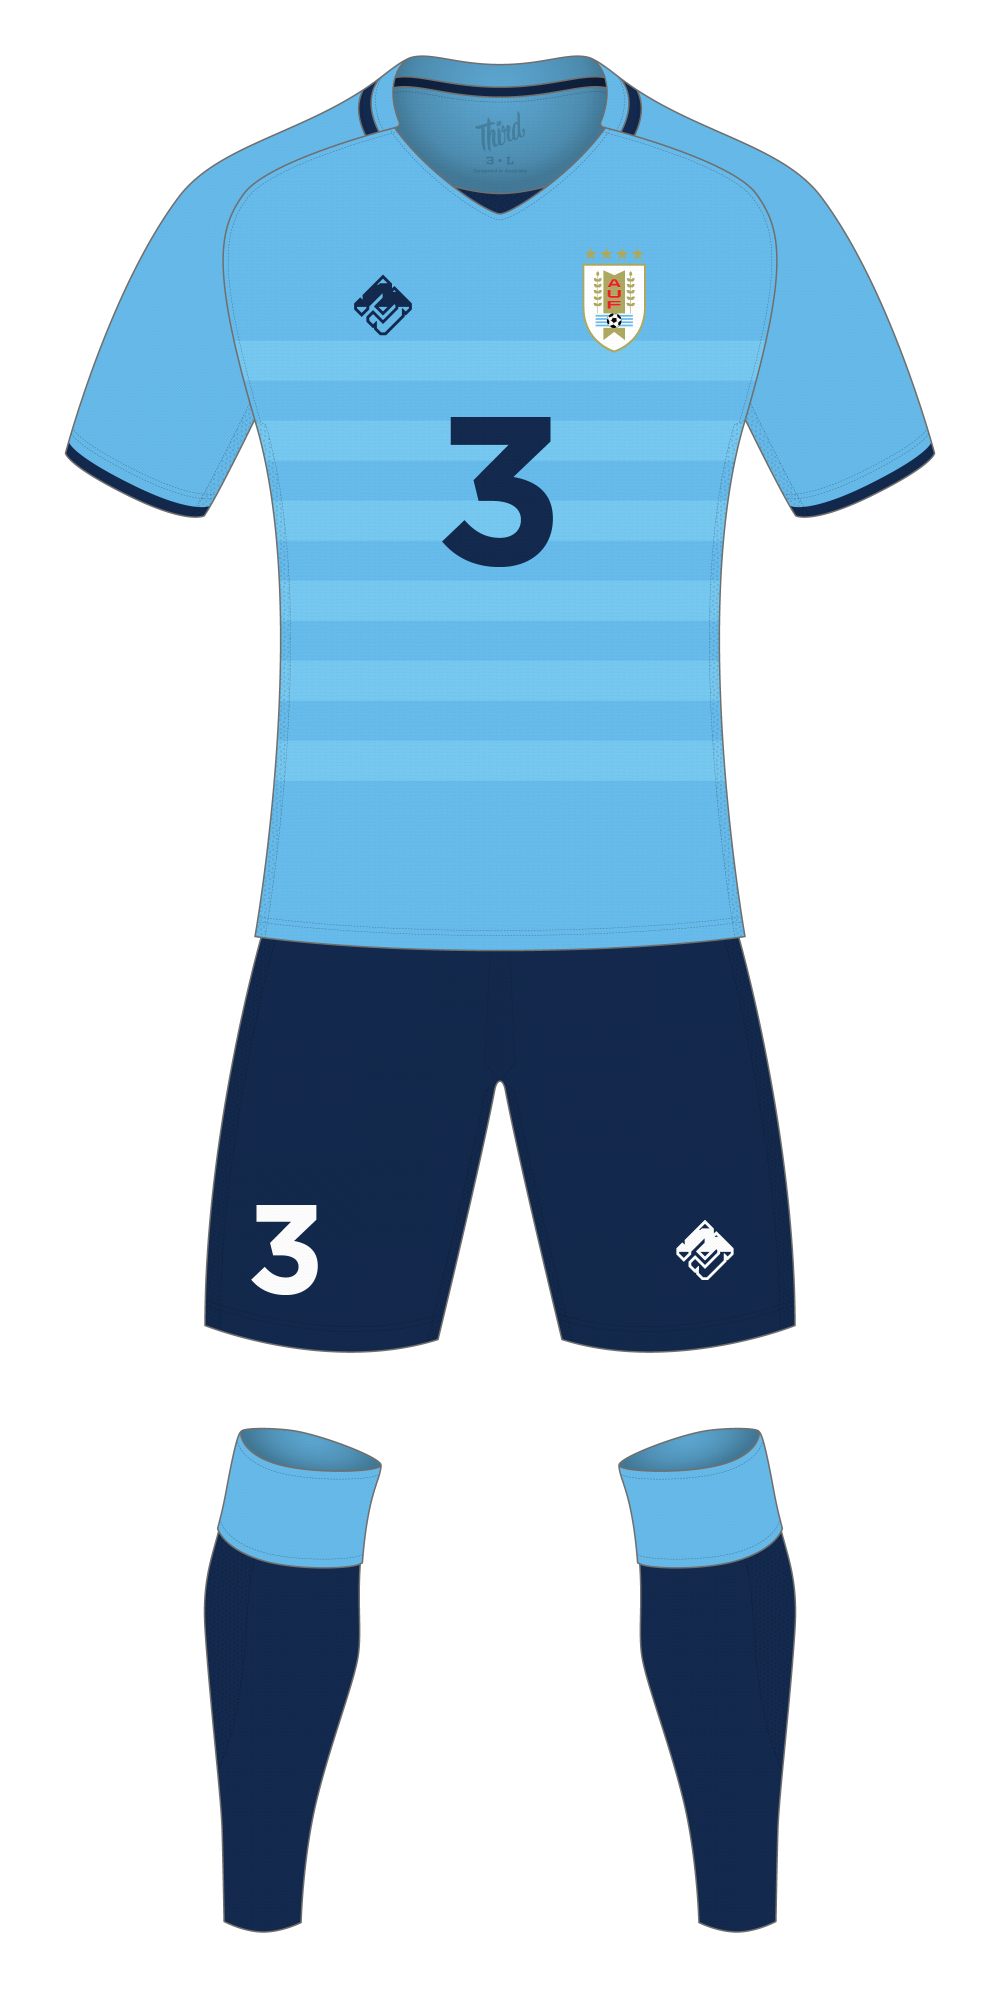 Uruguay World Cup 2018 concept